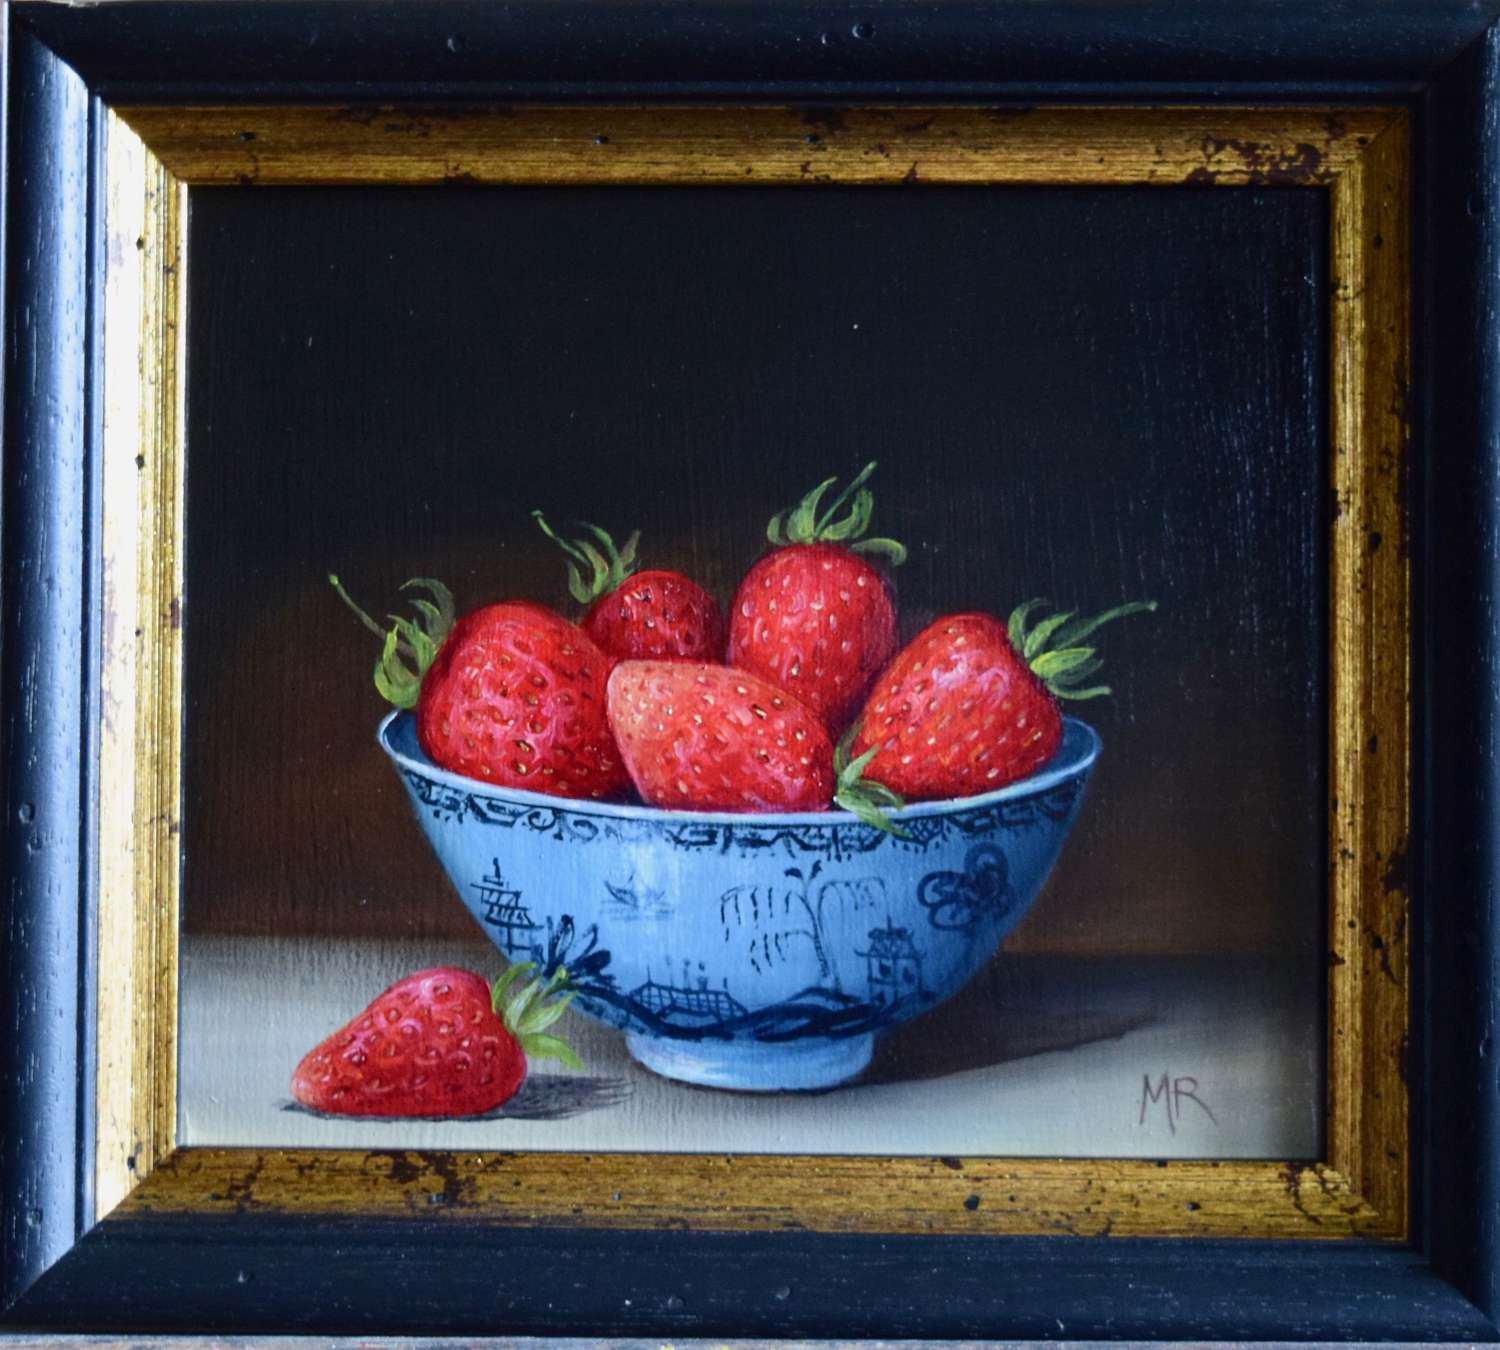 Small bowl of big strawberries